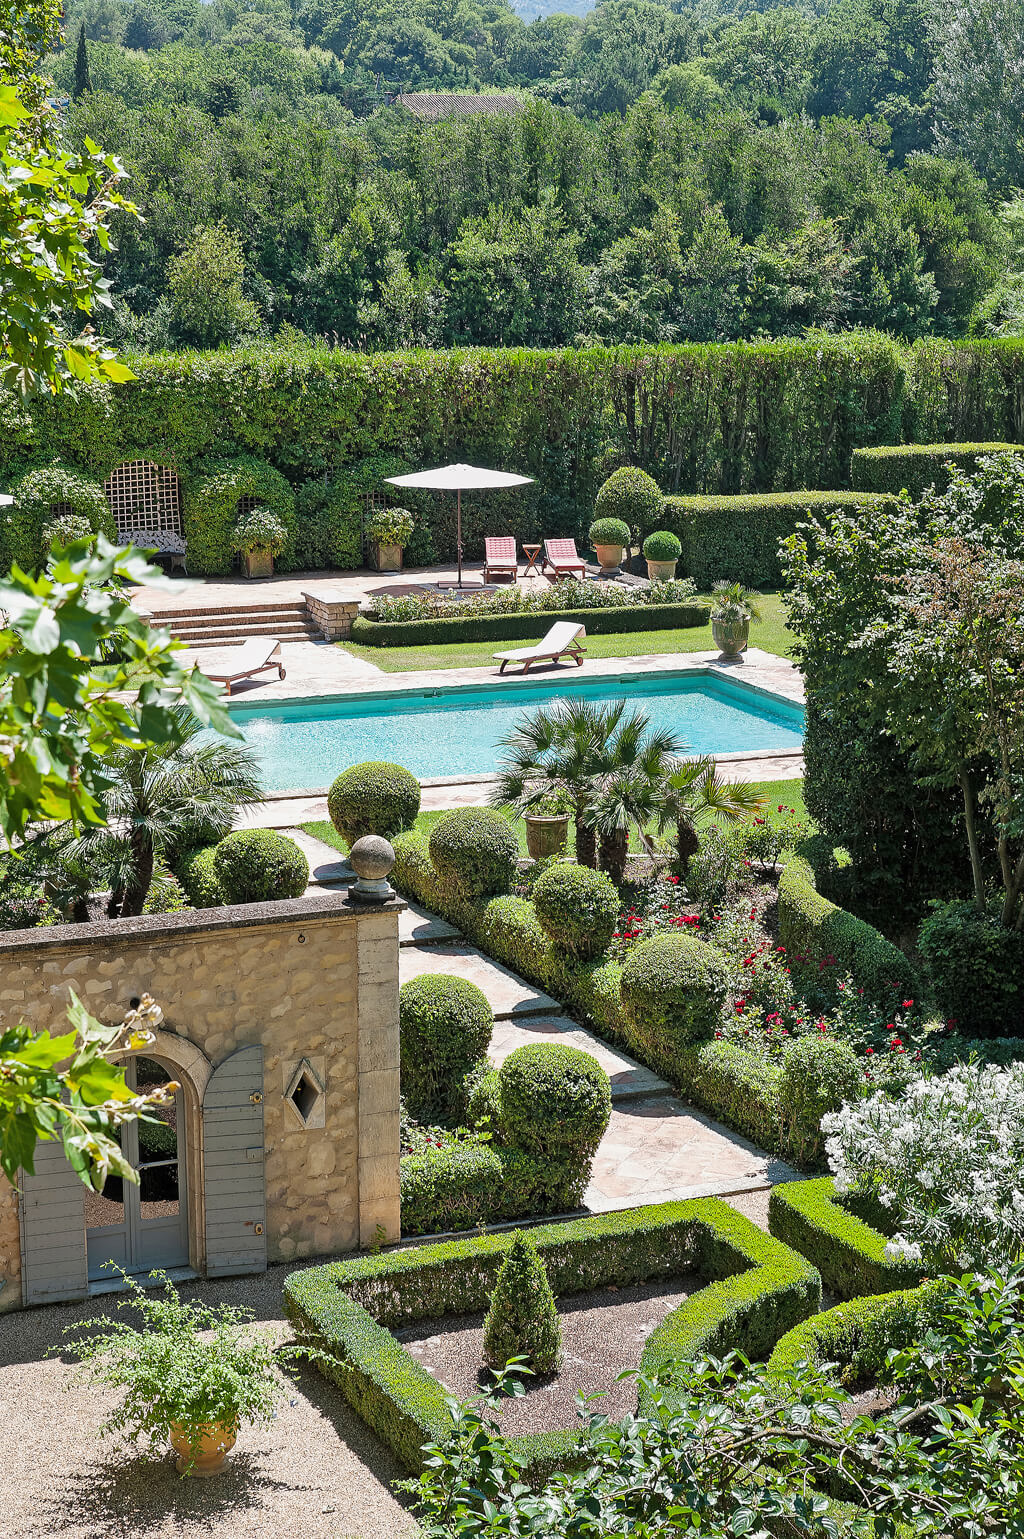 You can now rent this luxury French Chateau